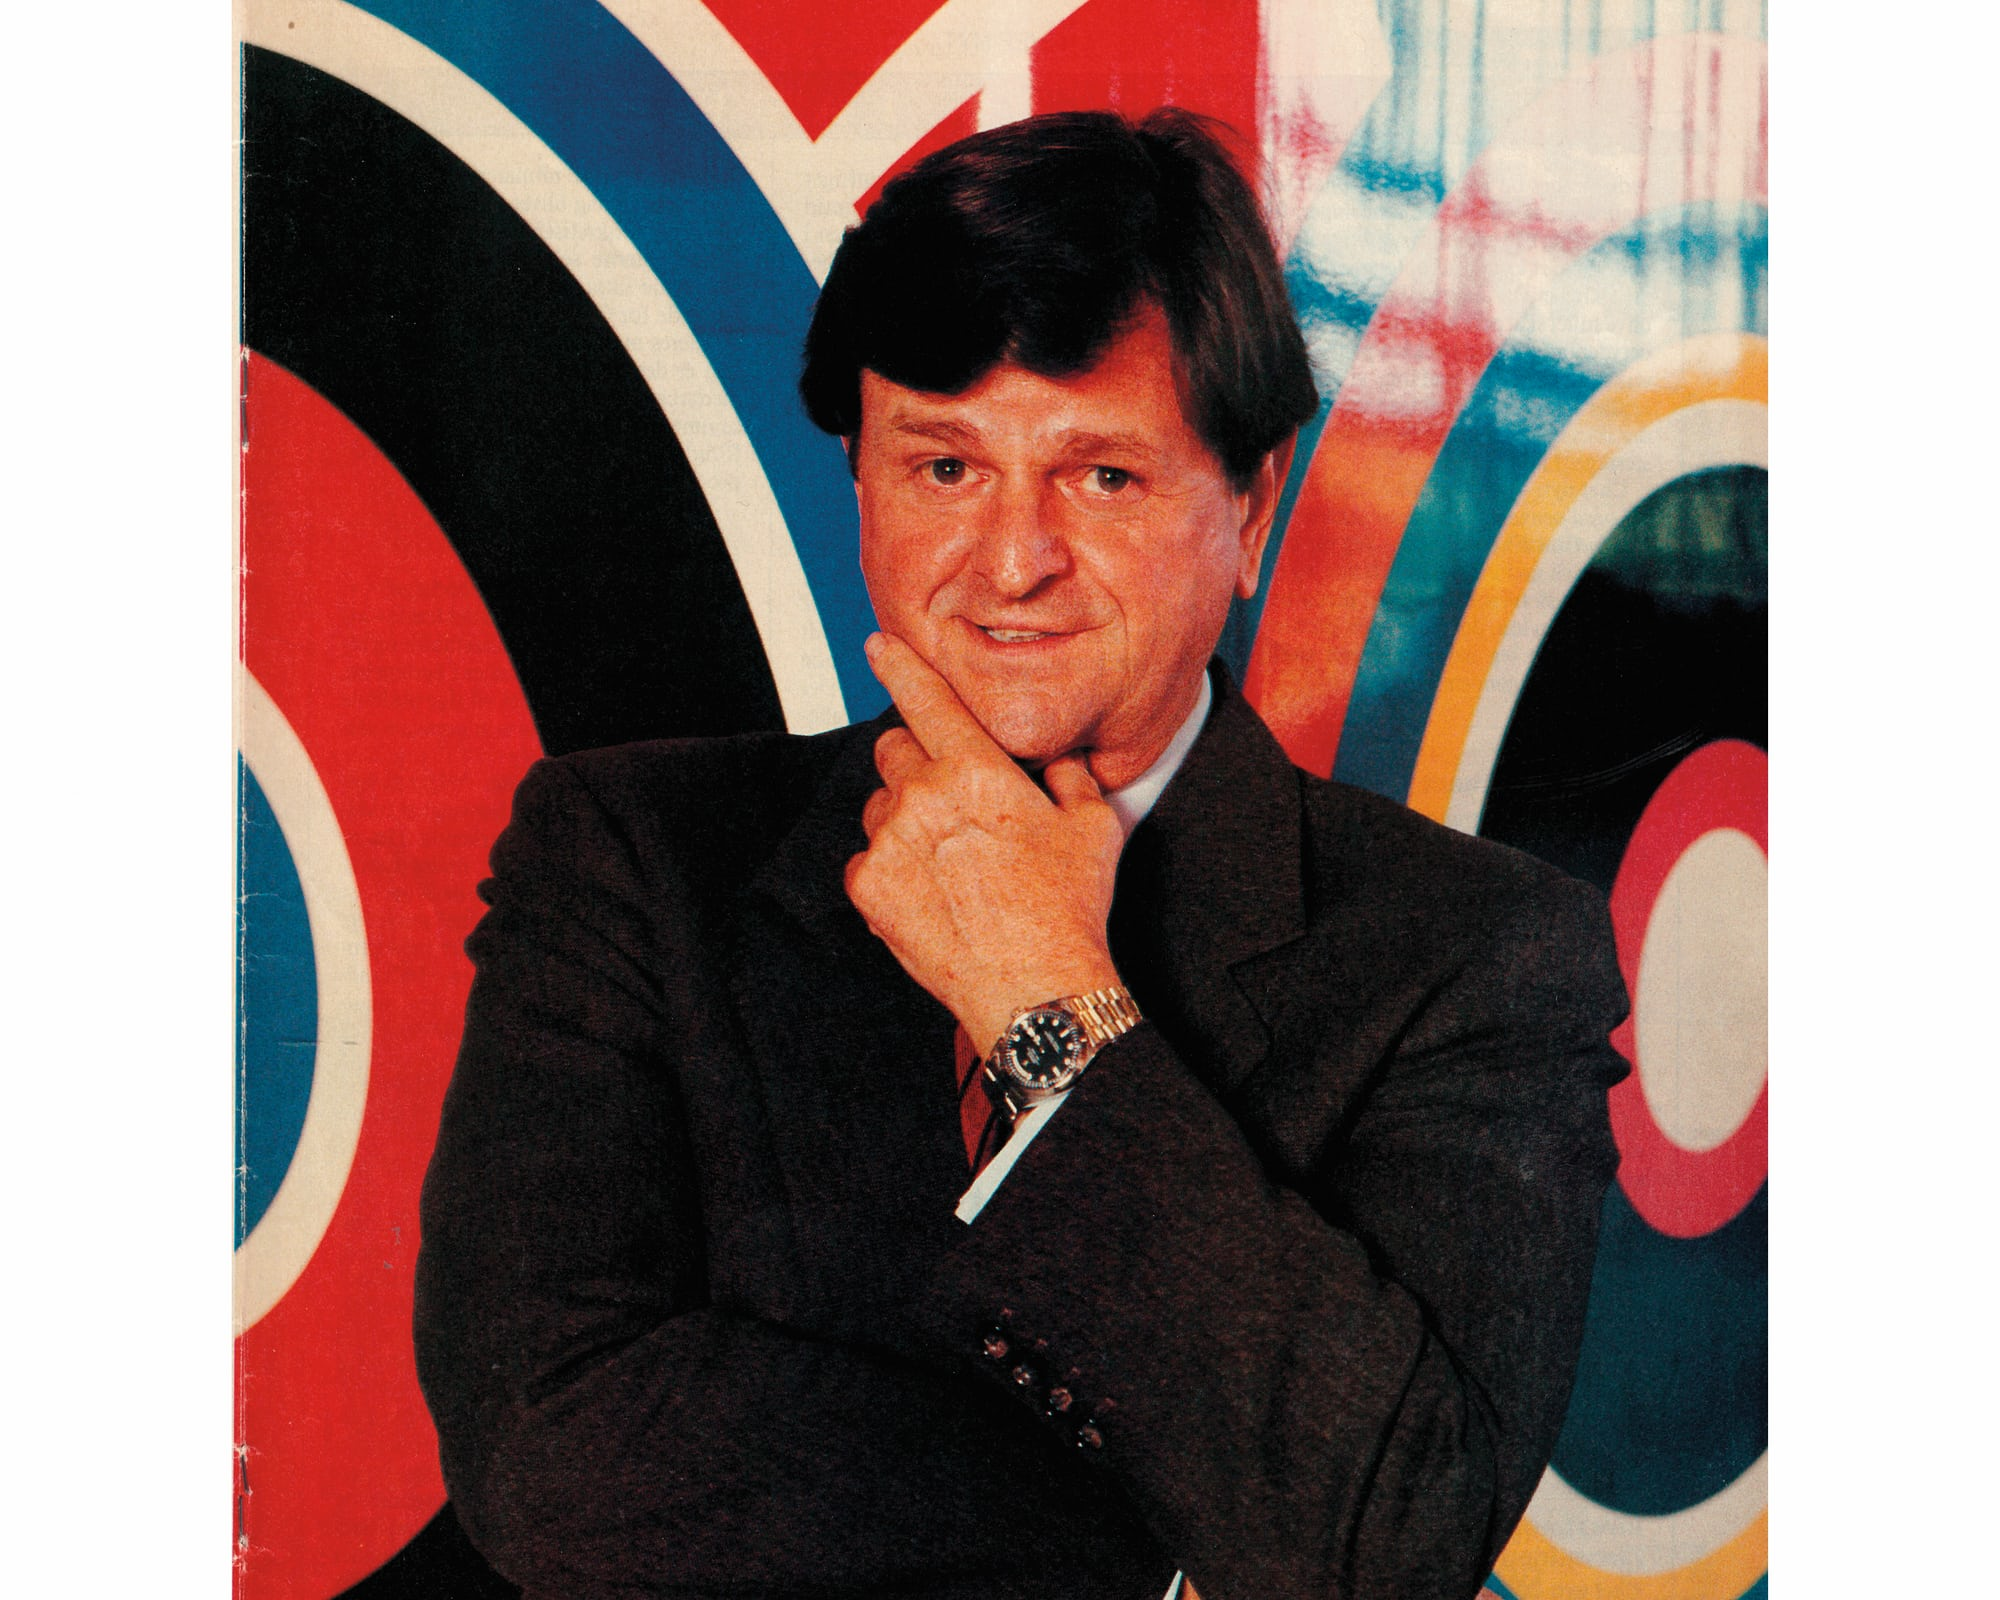 <p>The original owner wearing his unusual timepiece.</p>